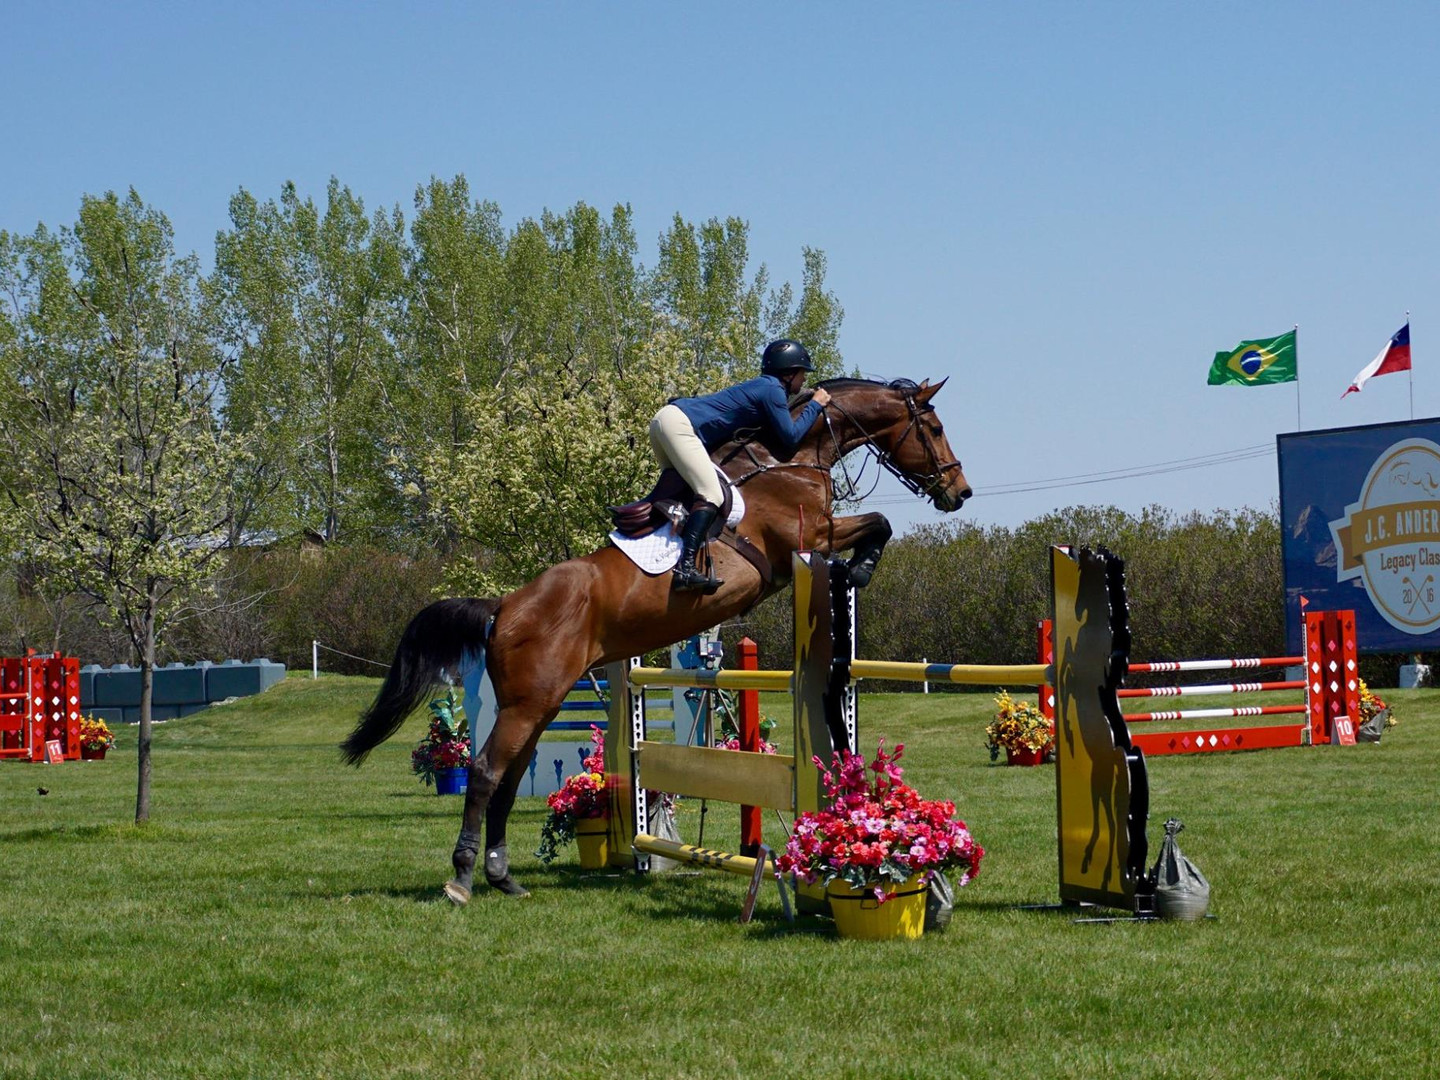 Katherine and Corianna at RMSJ - Eperon Equestrian